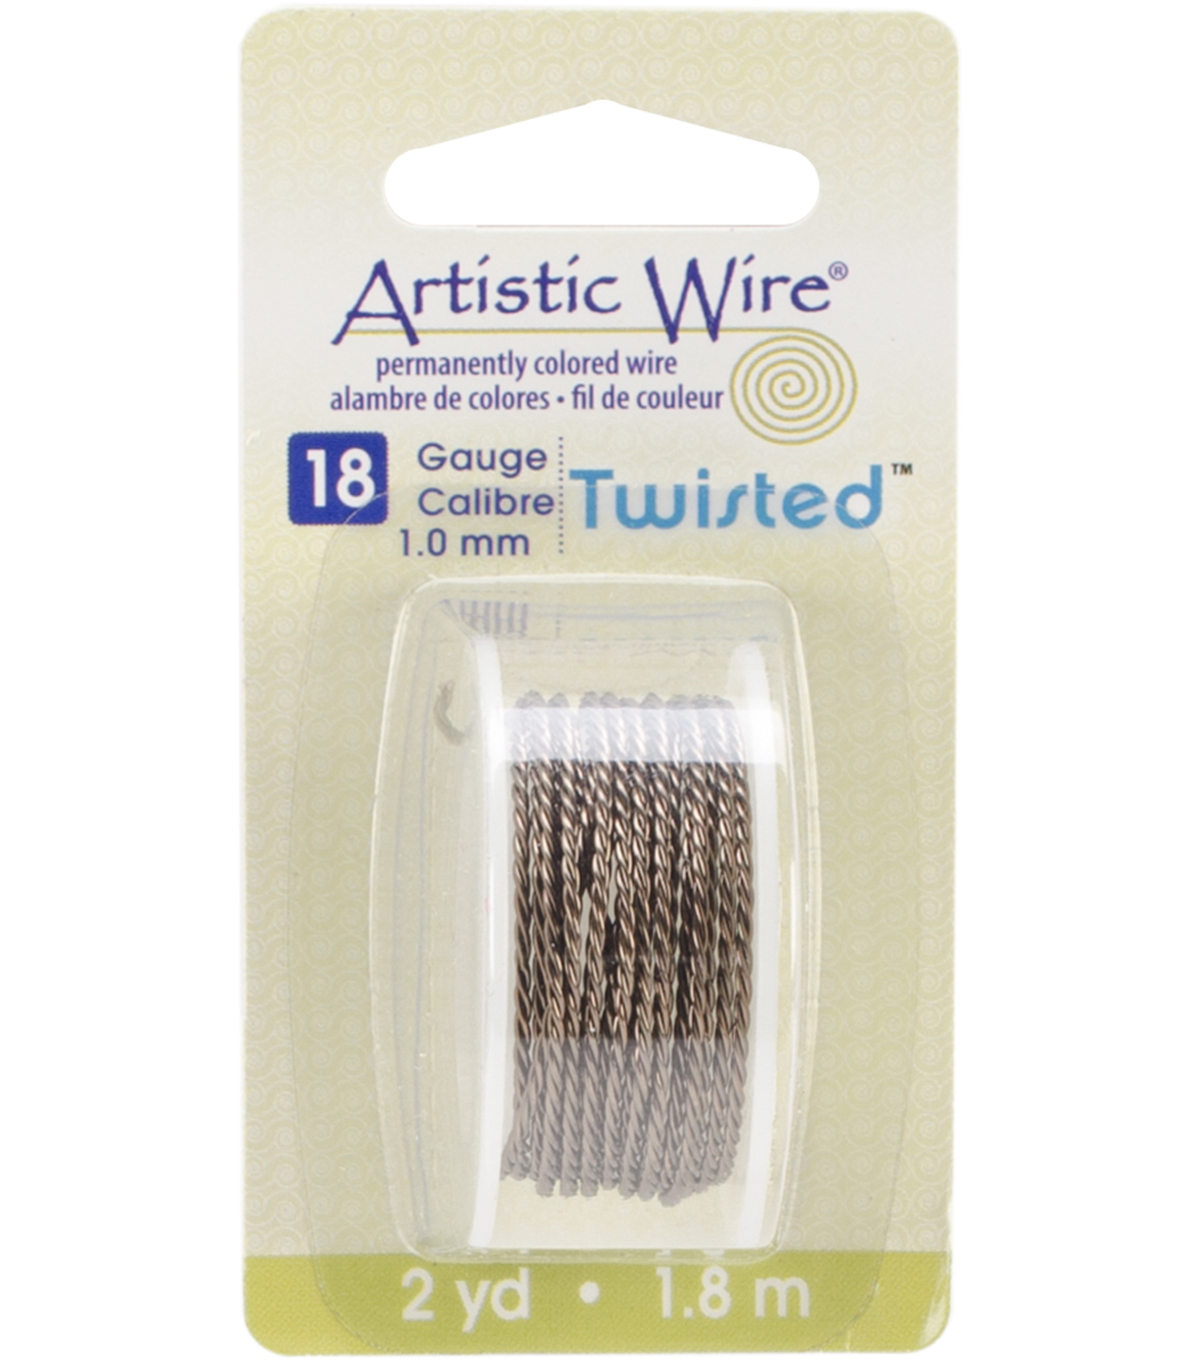 Artistic Wire Twisted Round Wire 18 Gauge